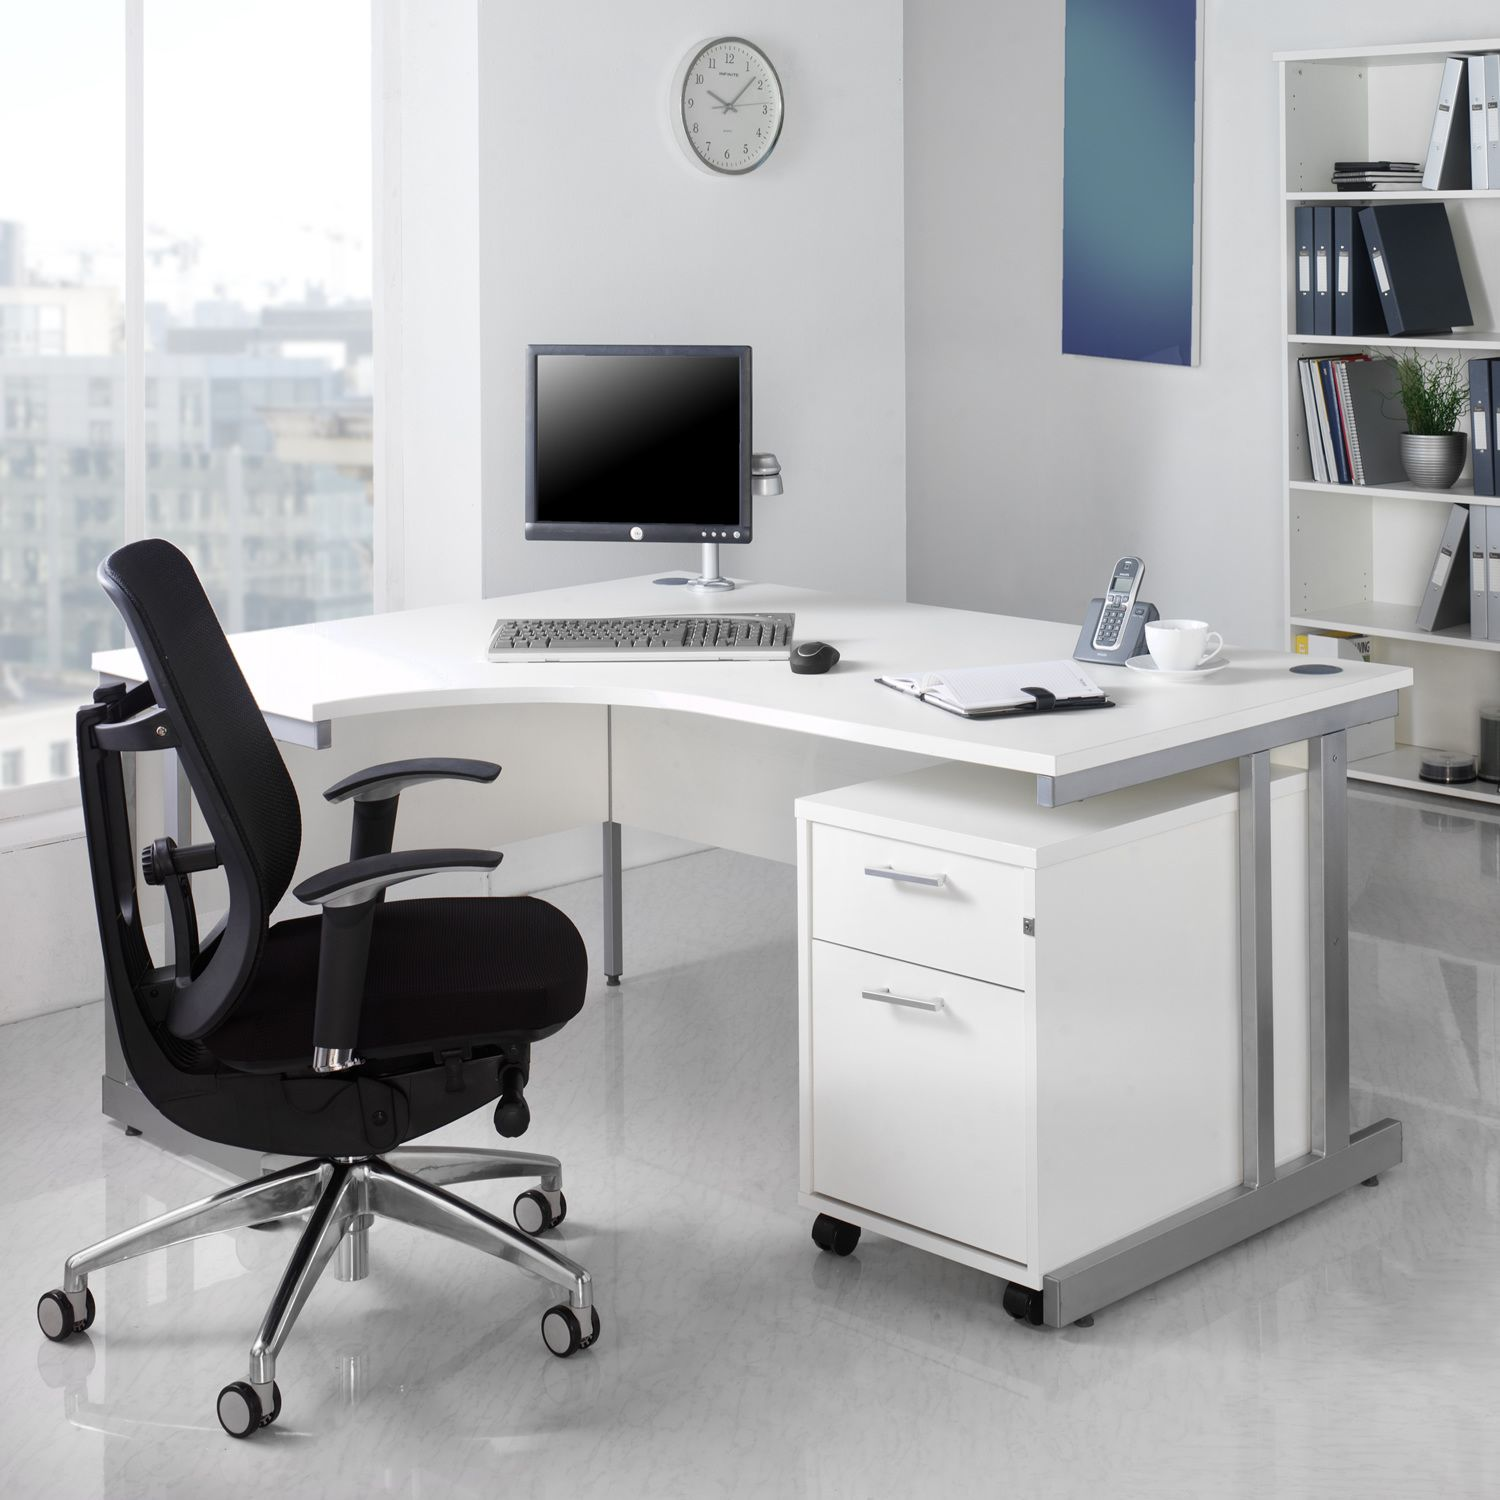 white wood office desk. White Wood Office Desk - Furniture For Home Check More At Http:// H